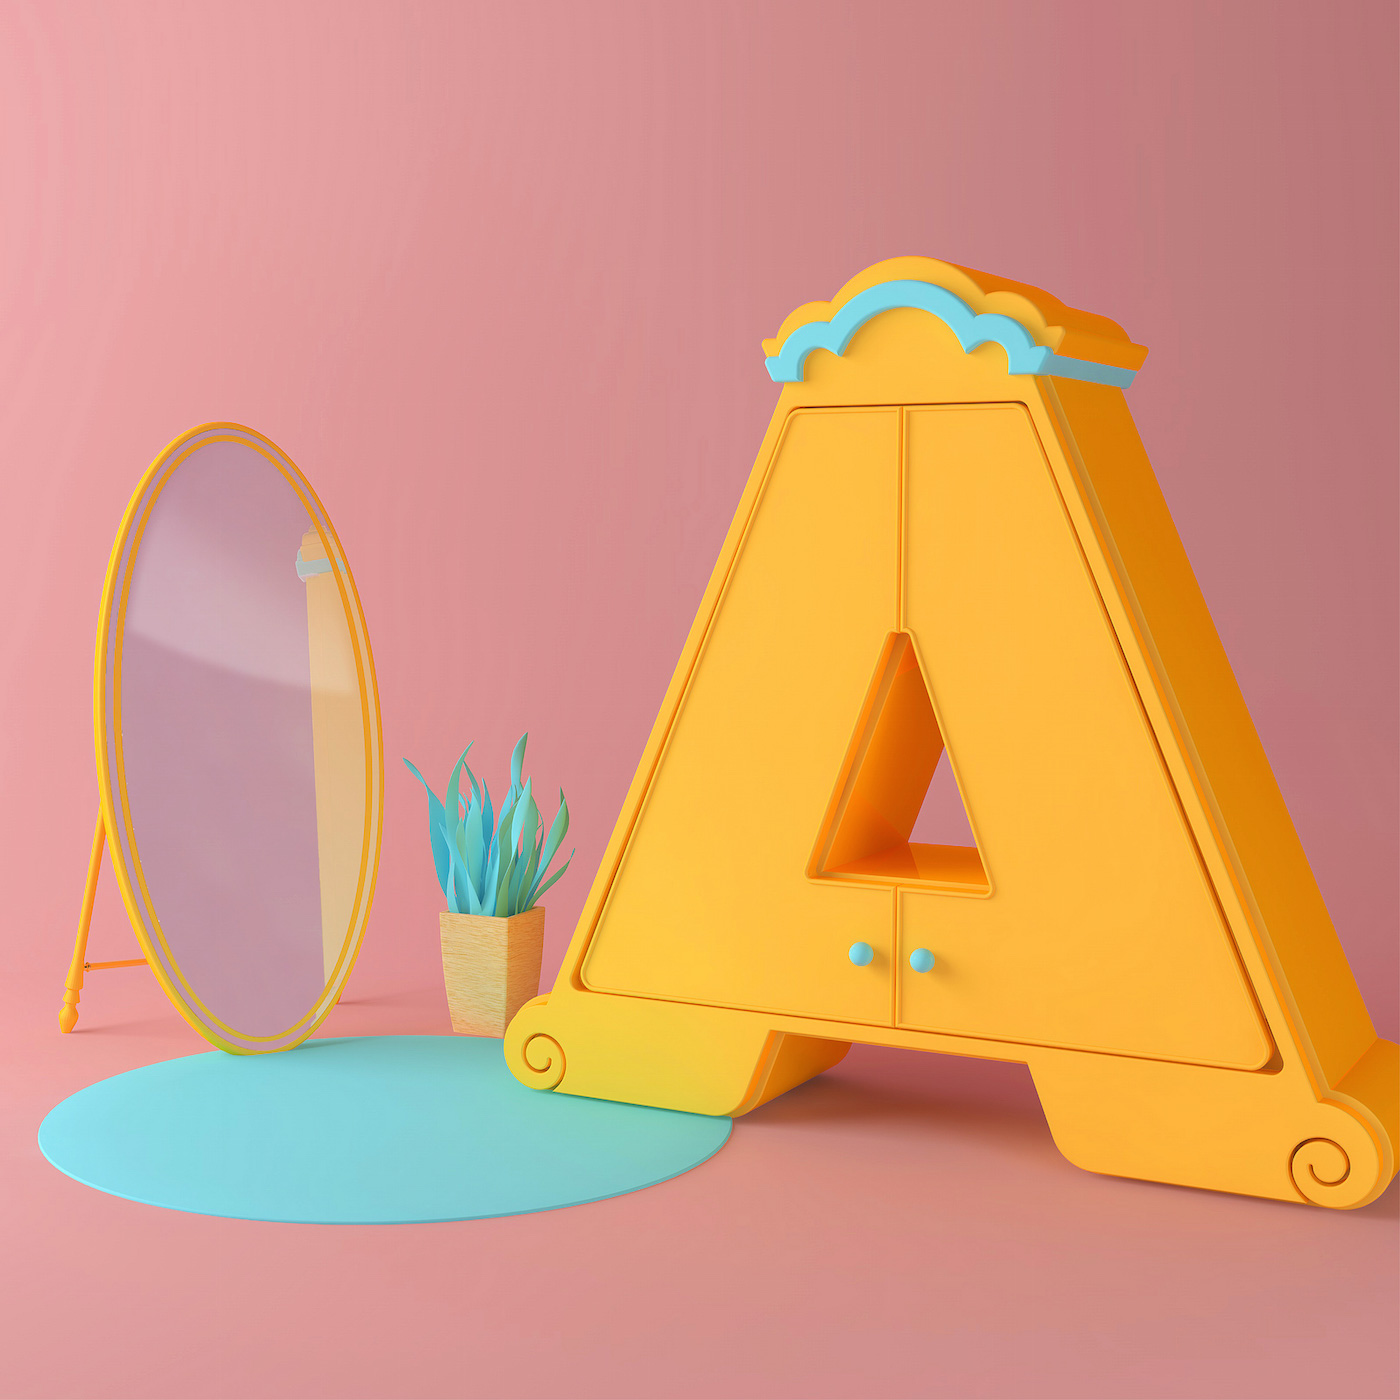 Cute Typography by Tatiana Astua